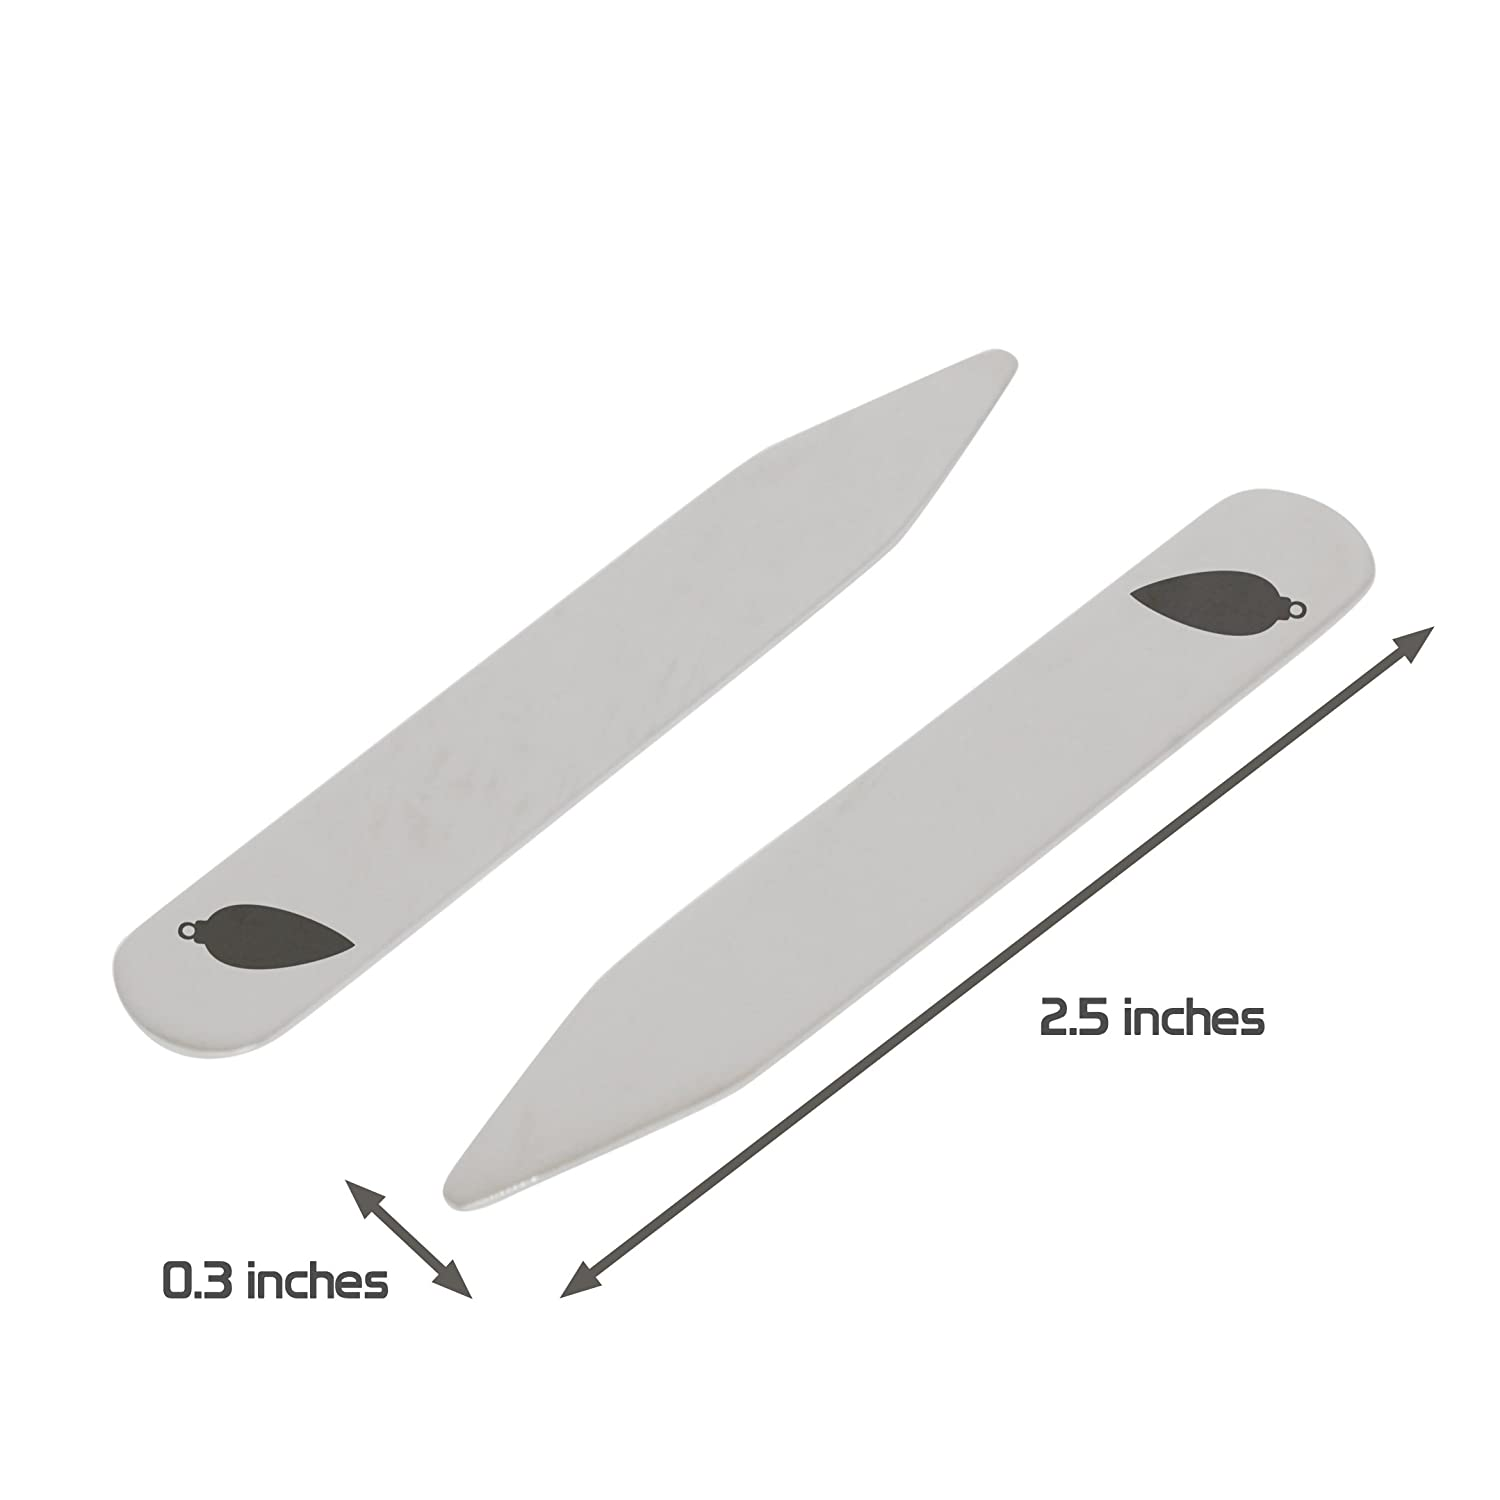 Made In USA 2.5 Inch Metal Collar Stiffeners MODERN GOODS SHOP Stainless Steel Collar Stays With Laser Engraved Long Ornament Design